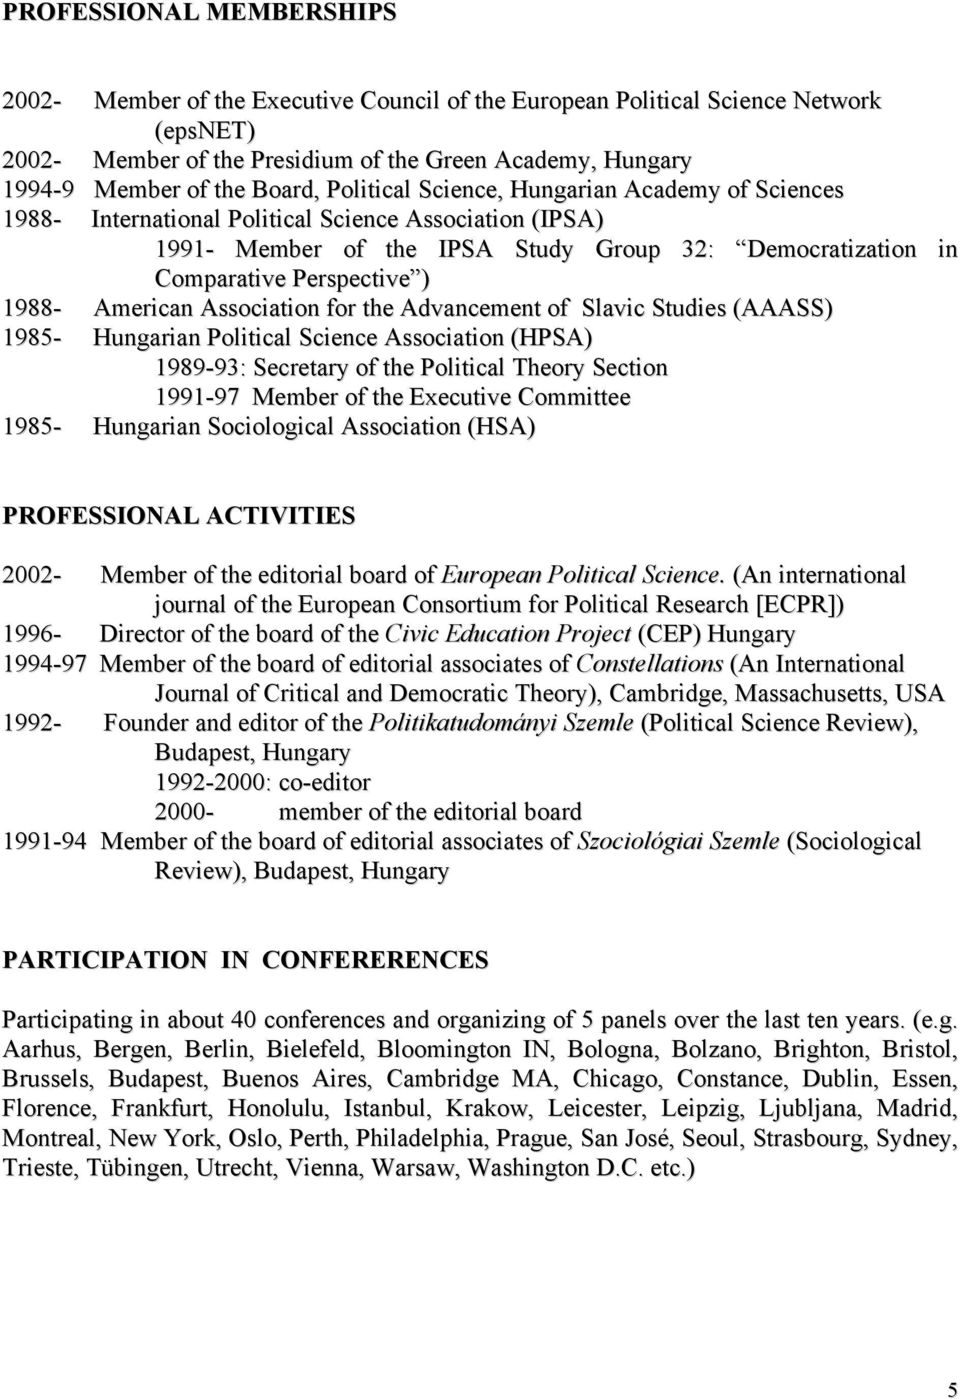 1988- American Association for the Advancement of Slavic Studies (AAASS) 1985- Hungarian Political Science Association (HPSA) 1989-93: Secretary of the Political Theory Section 1991-97 Member of the